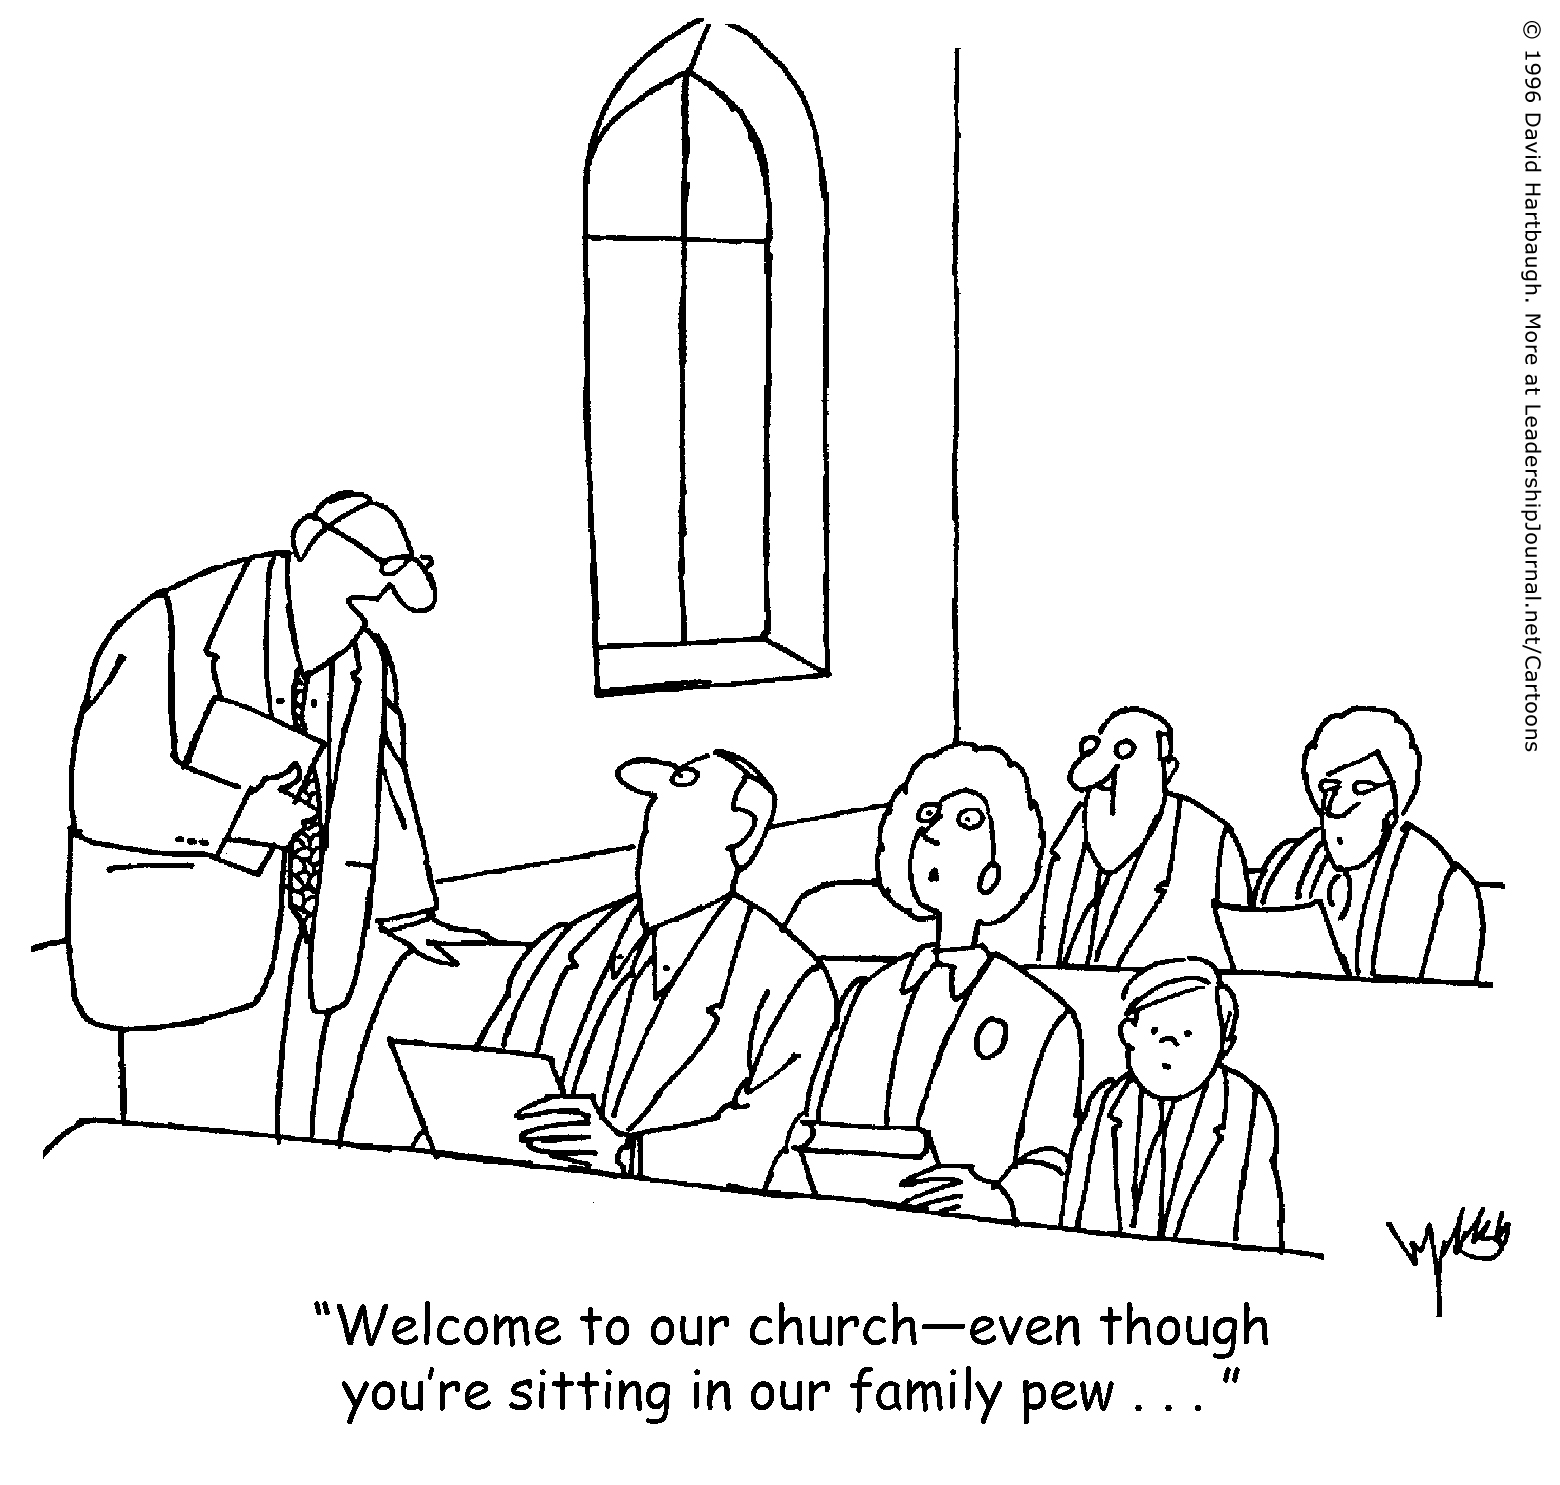 Image result for church newcomers cartoon